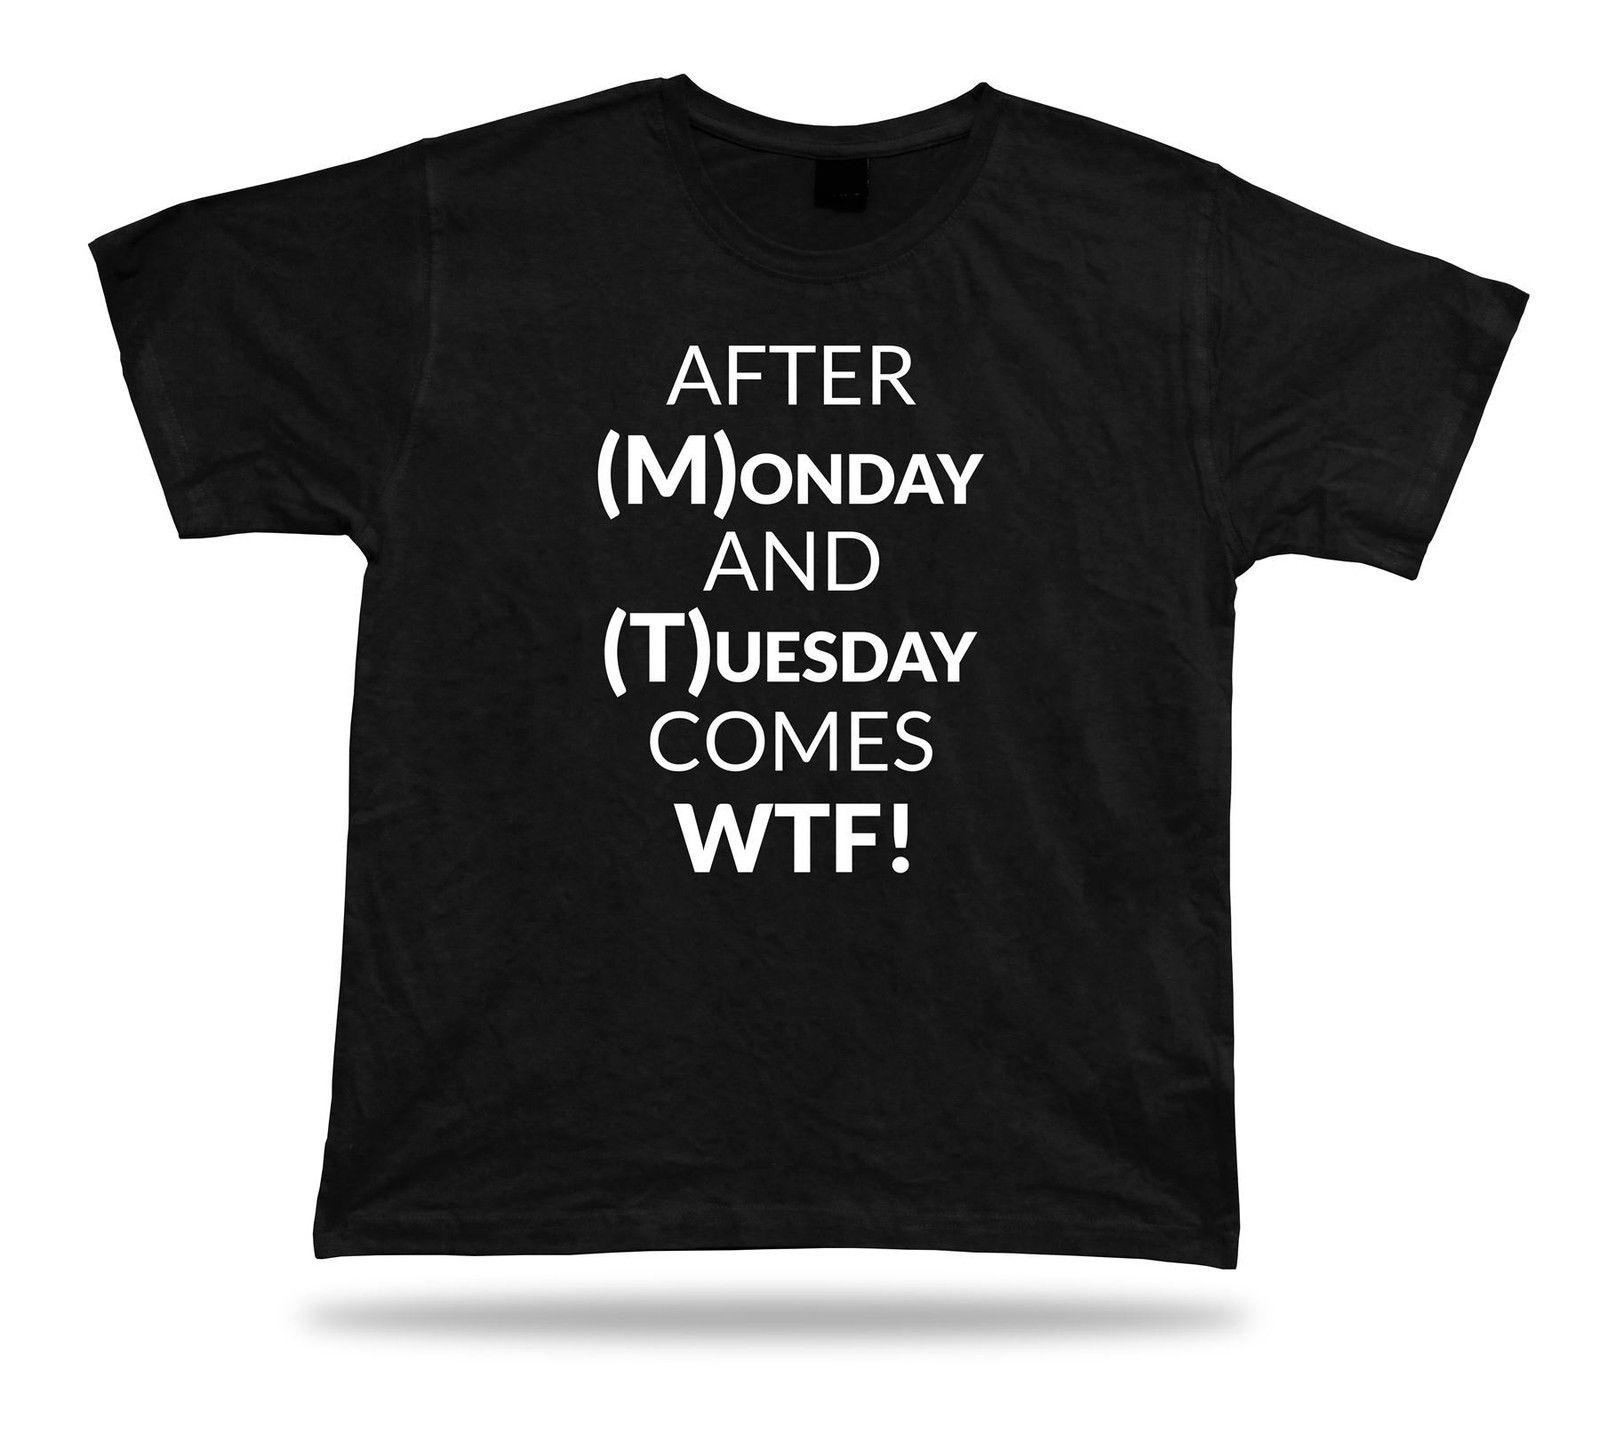 d9227a73bff Funny Shirt WTF Monday Tuesday Wednesday Thursday Friday Funny Unisex  Casual Tee Gift Free Shipping Unisex Funny Classic Unique Online with   17.37 Piece on ...